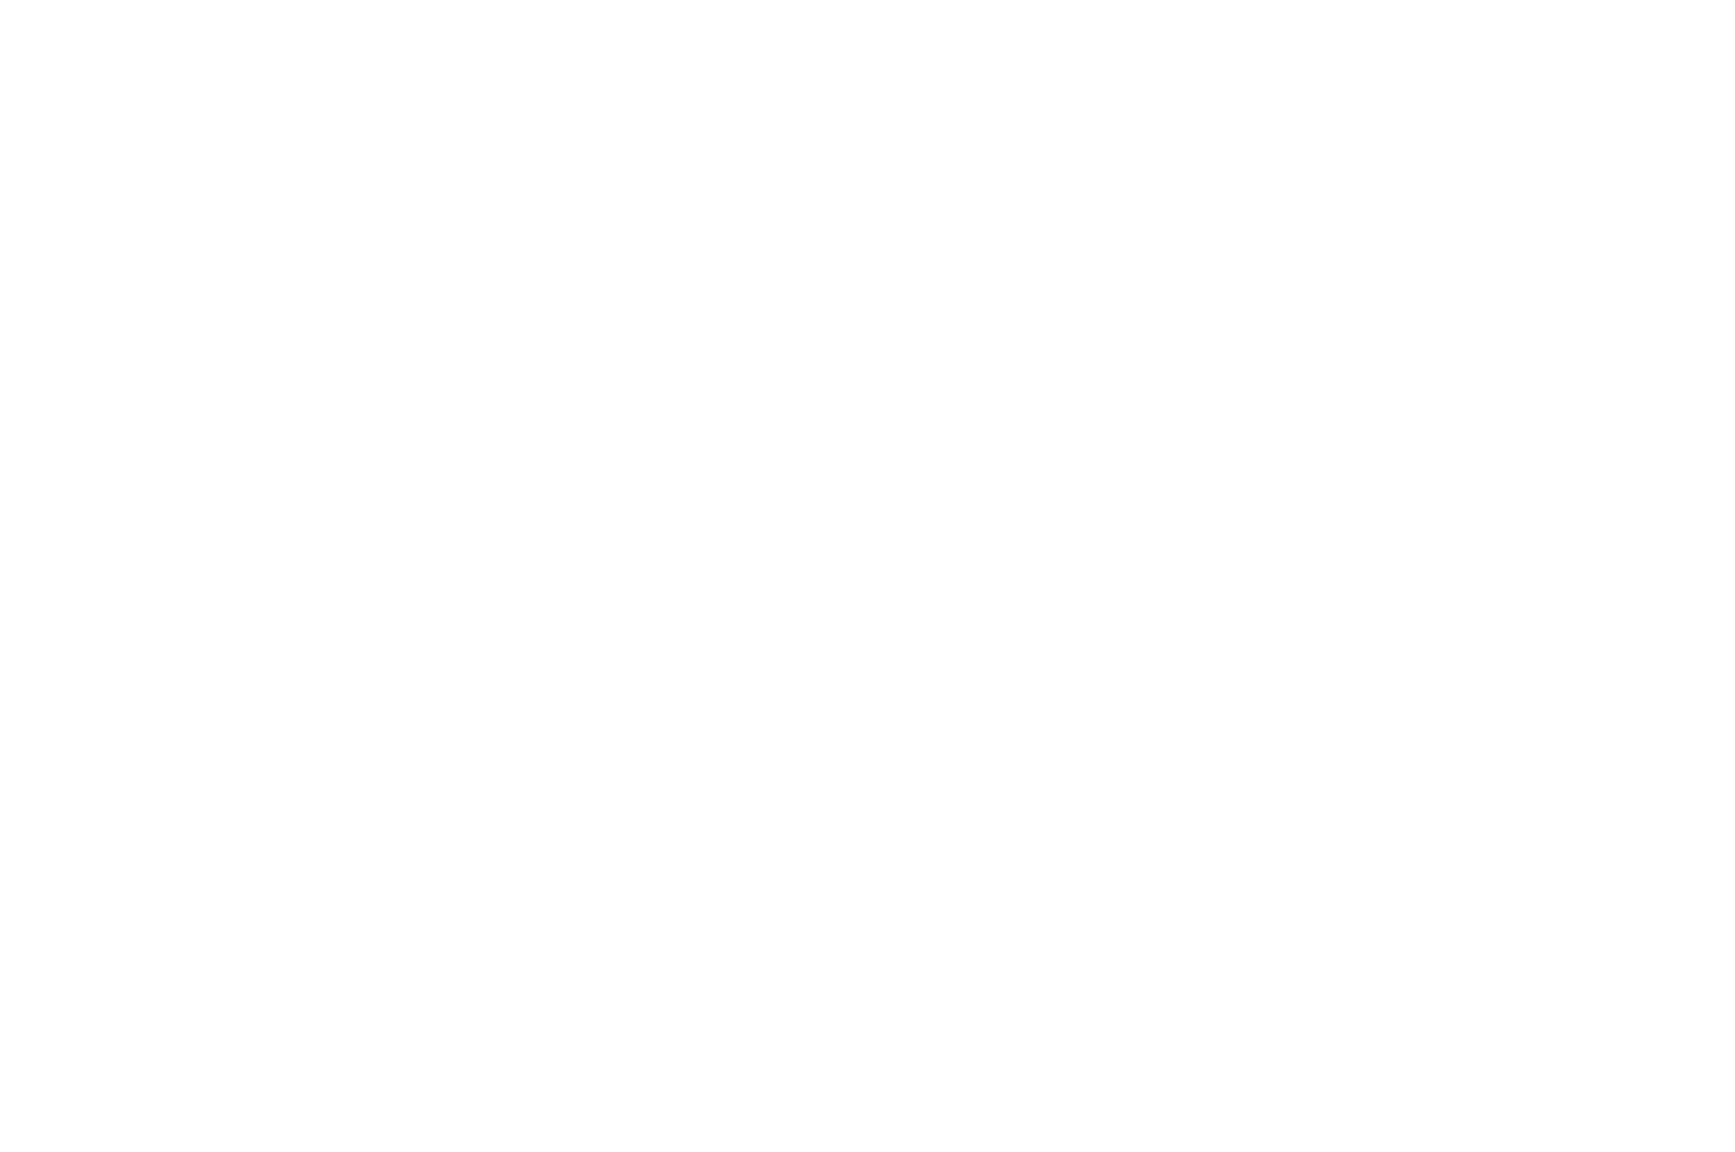 OFFICIAL SELECTION - Indie Short Fest - Best Web New Media 2021